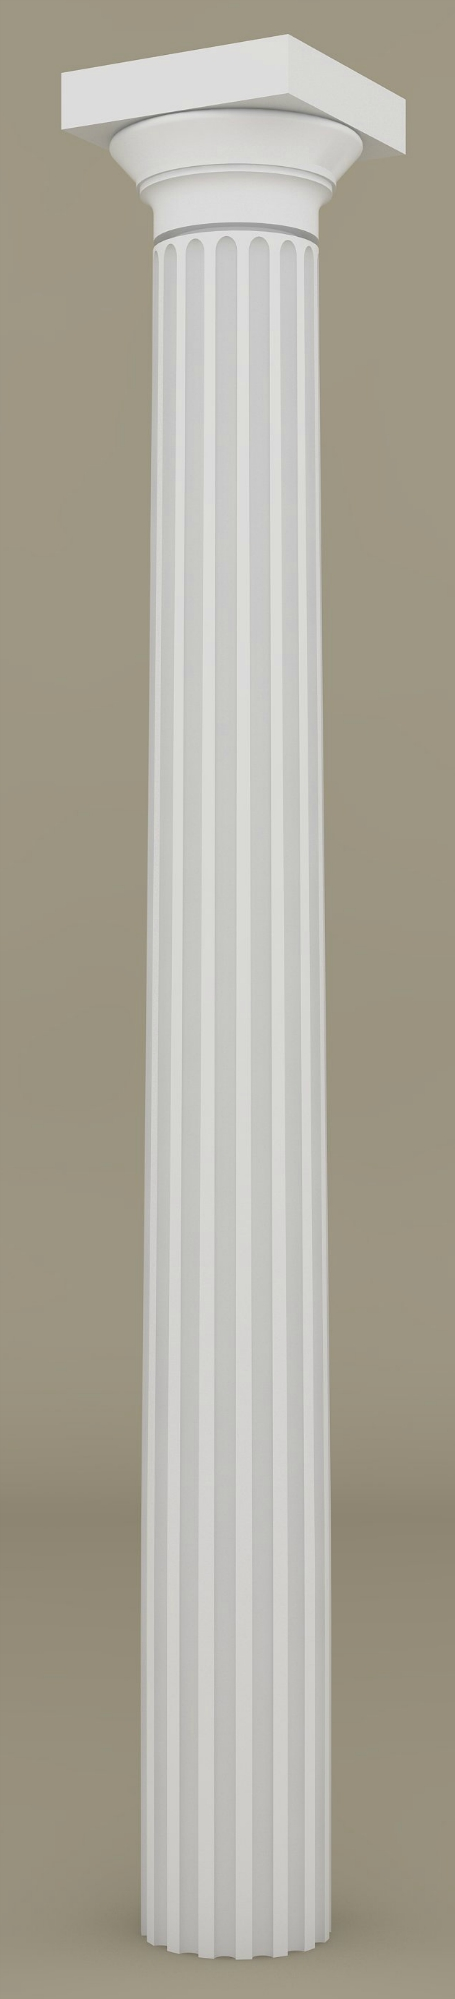 Architectural wood column greek doric design 130 for Architectural wood columns